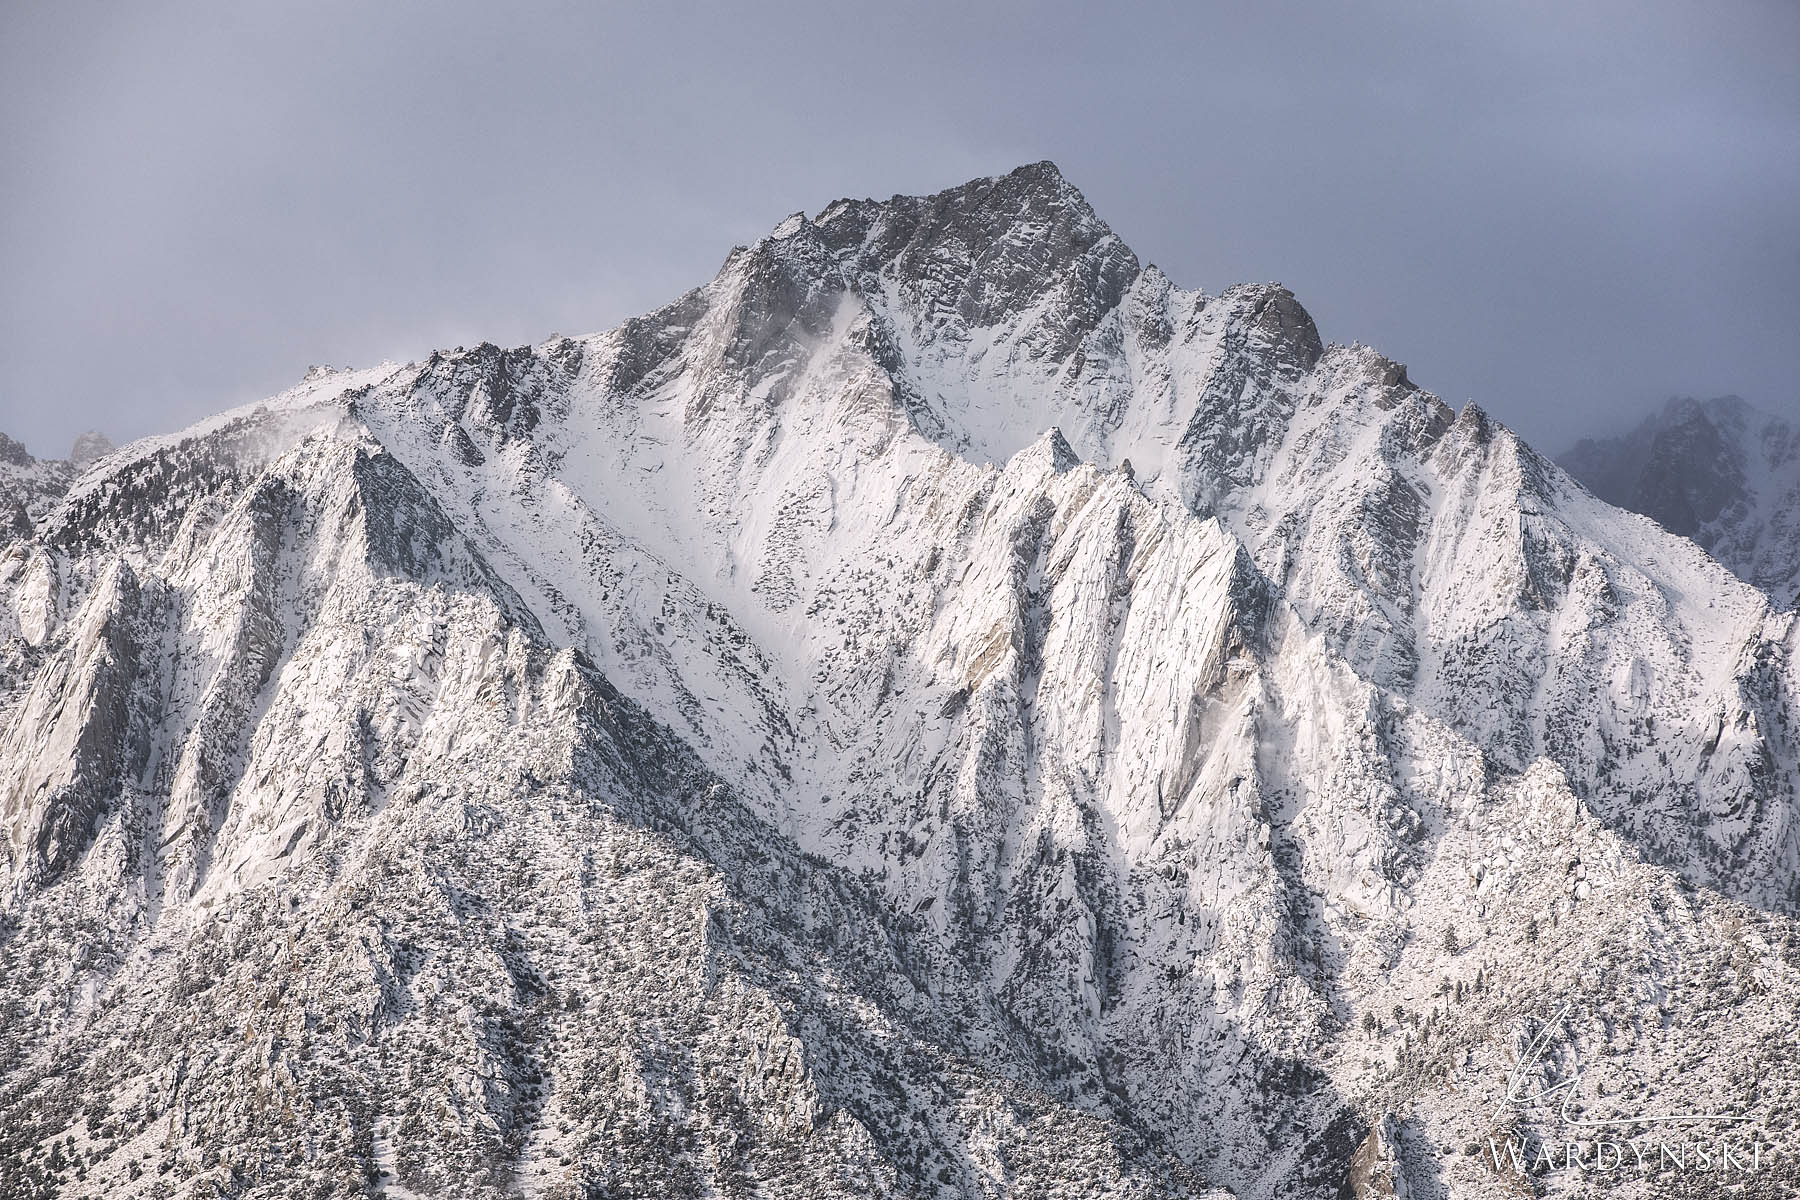 Fine Art Print | Limited Edition of 50  Lone Pine Peak sits at the southern end of the Eastern Sierra Nevada. While most people...